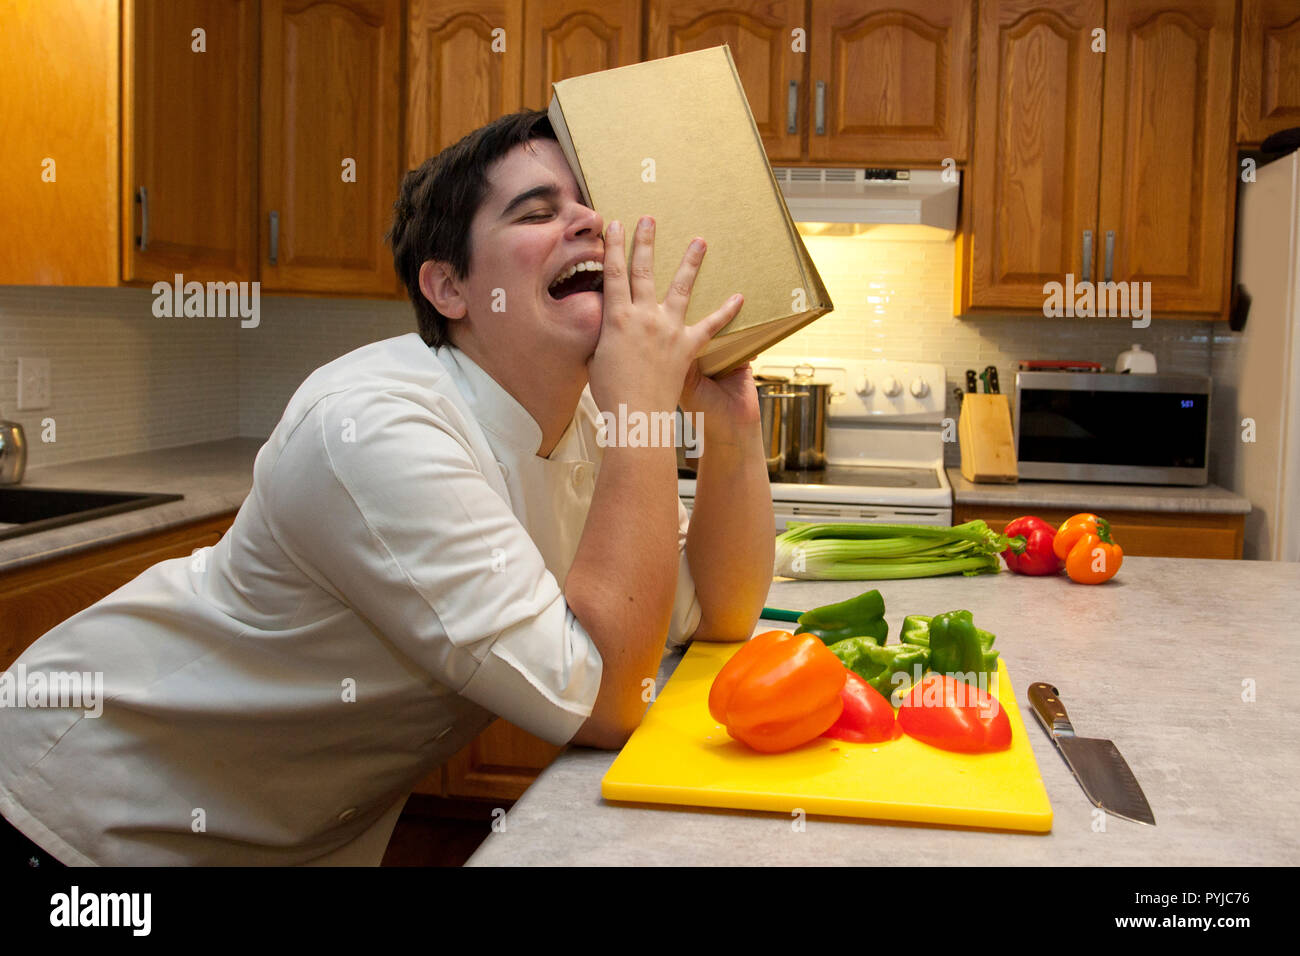 Person crying in the kitchen, sobbing into their cookbook with vegetables in the foreground - Stock Image